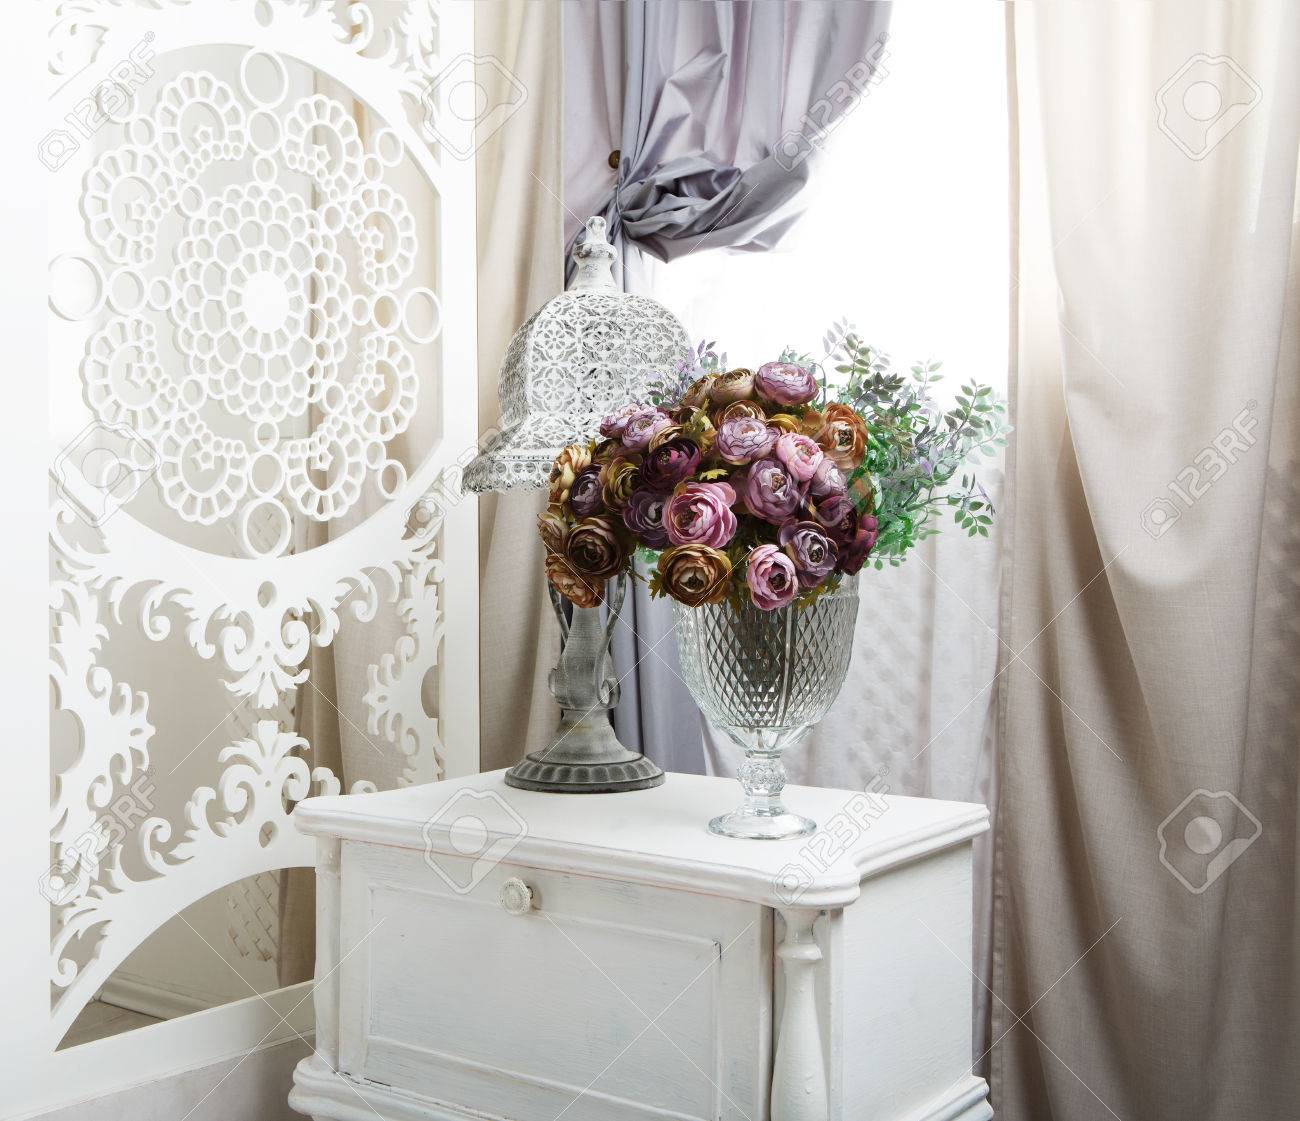 Wedding Decor, Room Decorated For Shabby Chic Rustic Wedding ...